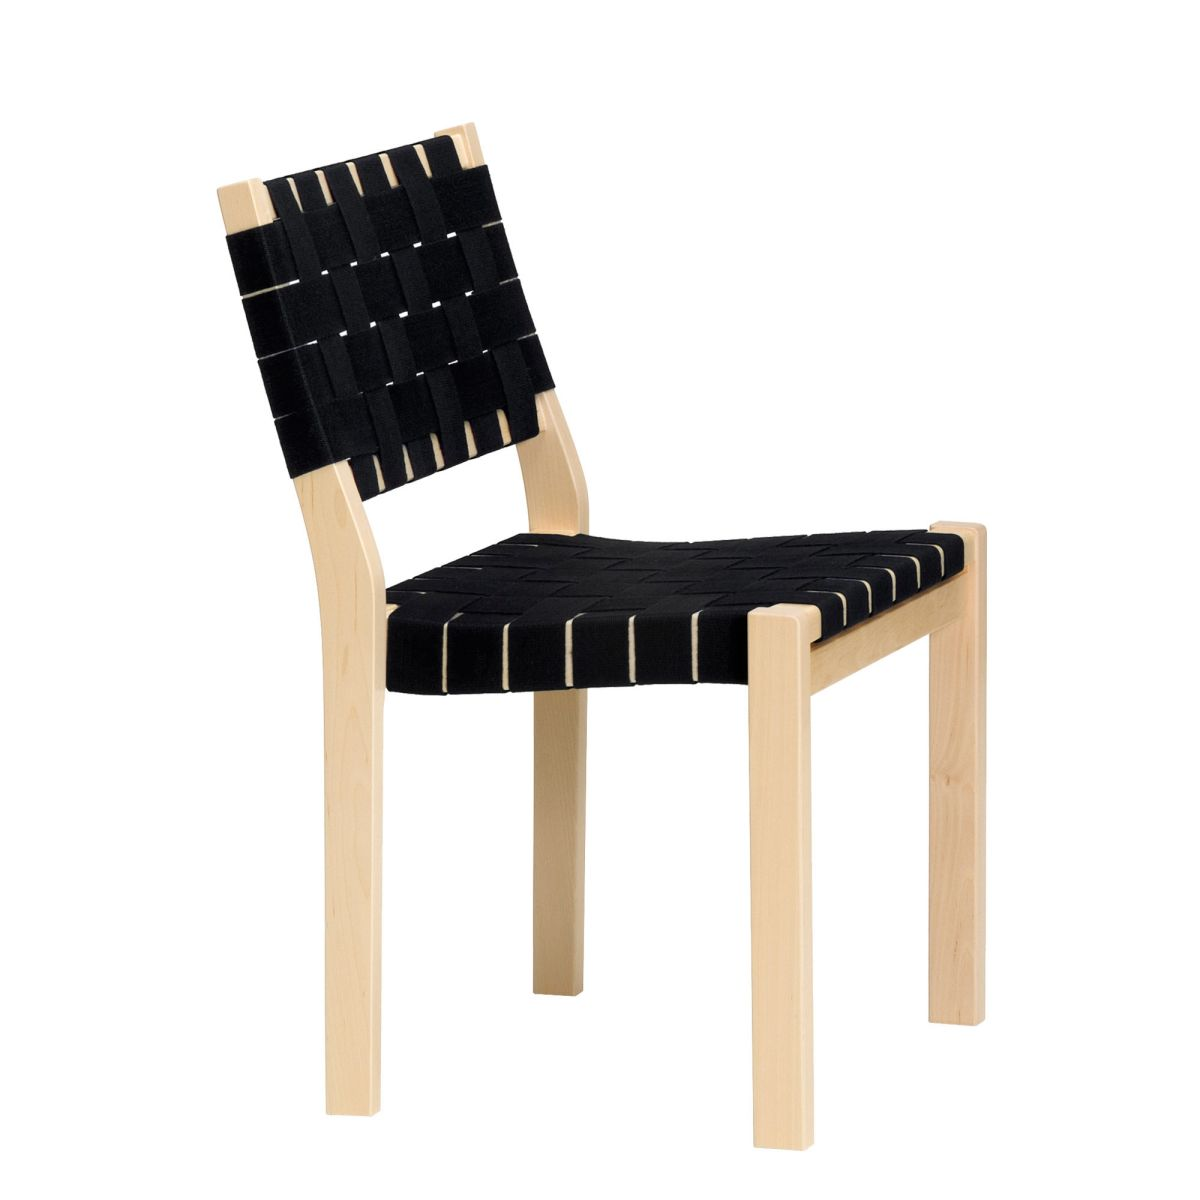 Chair-611-Black-Webbing_Web-1977269